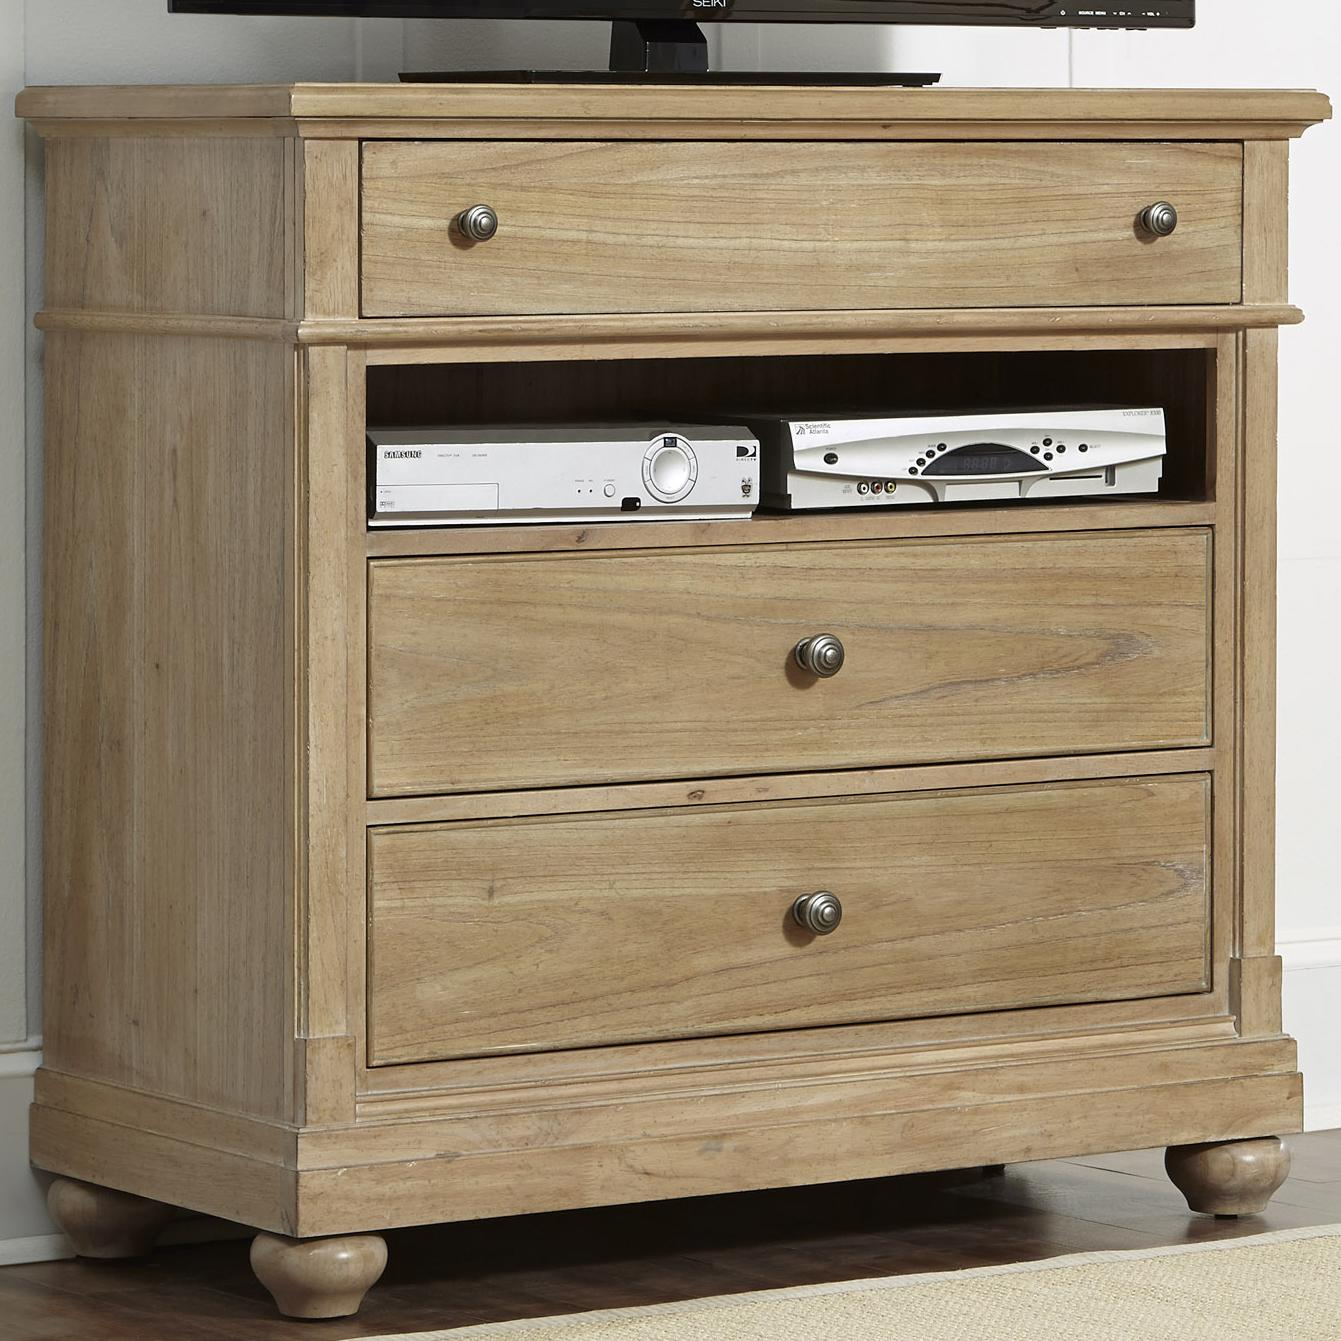 Liberty Furniture Harbor View 531 Br45 Media Chest With 3 Drawers And Storage Compartment